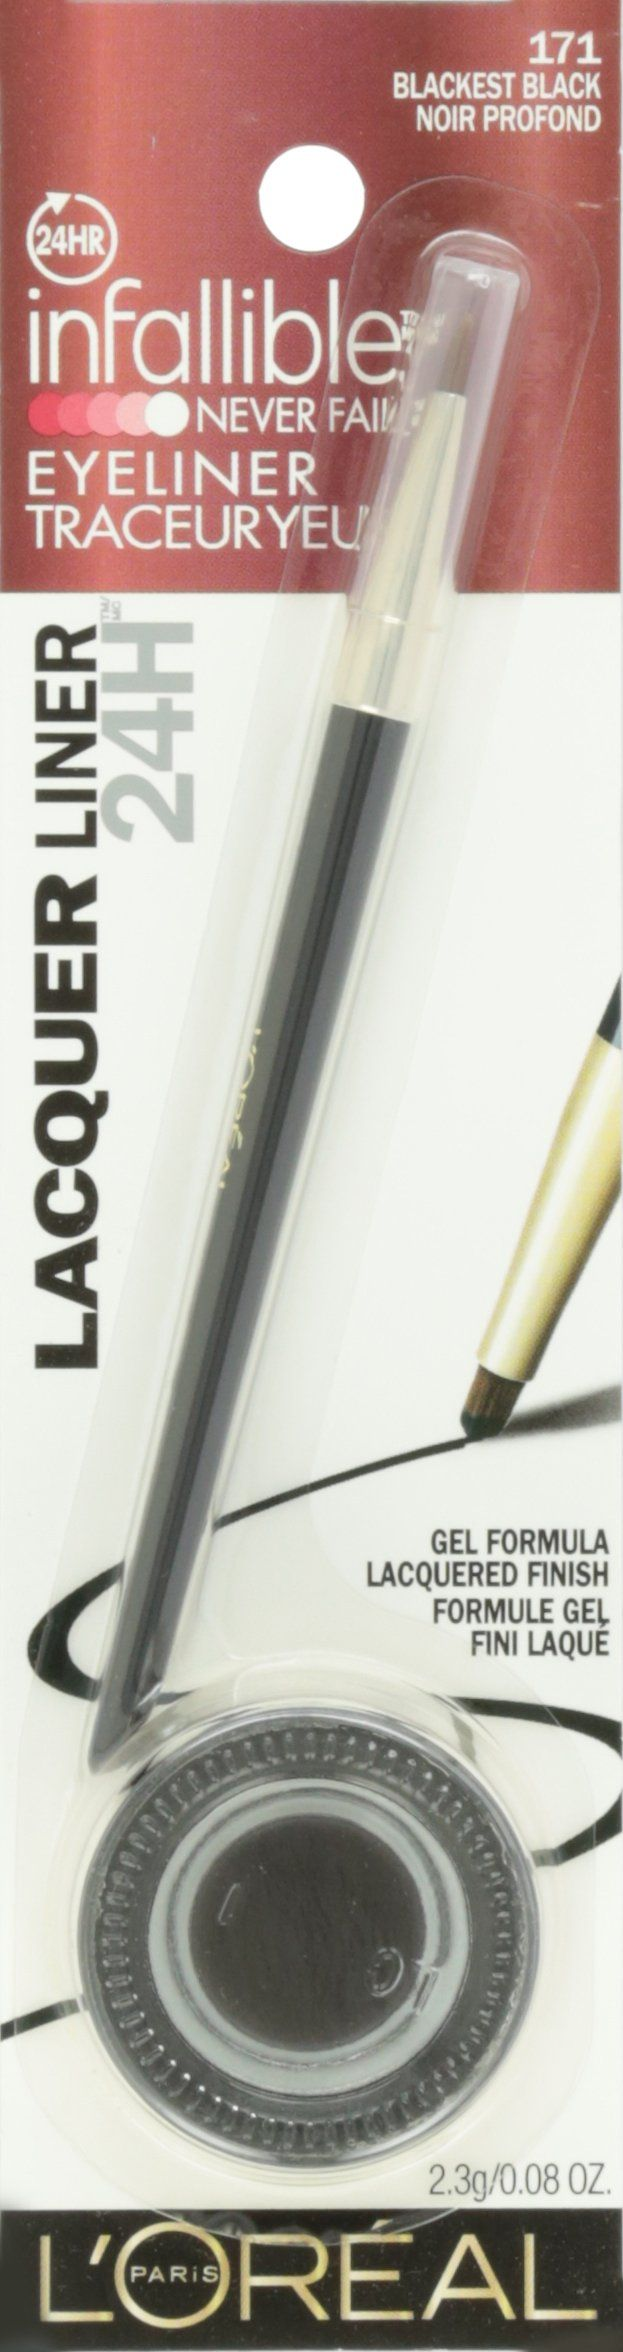 Amazon.com : L'Oreal Paris Infallible Lacquer Eyeliner